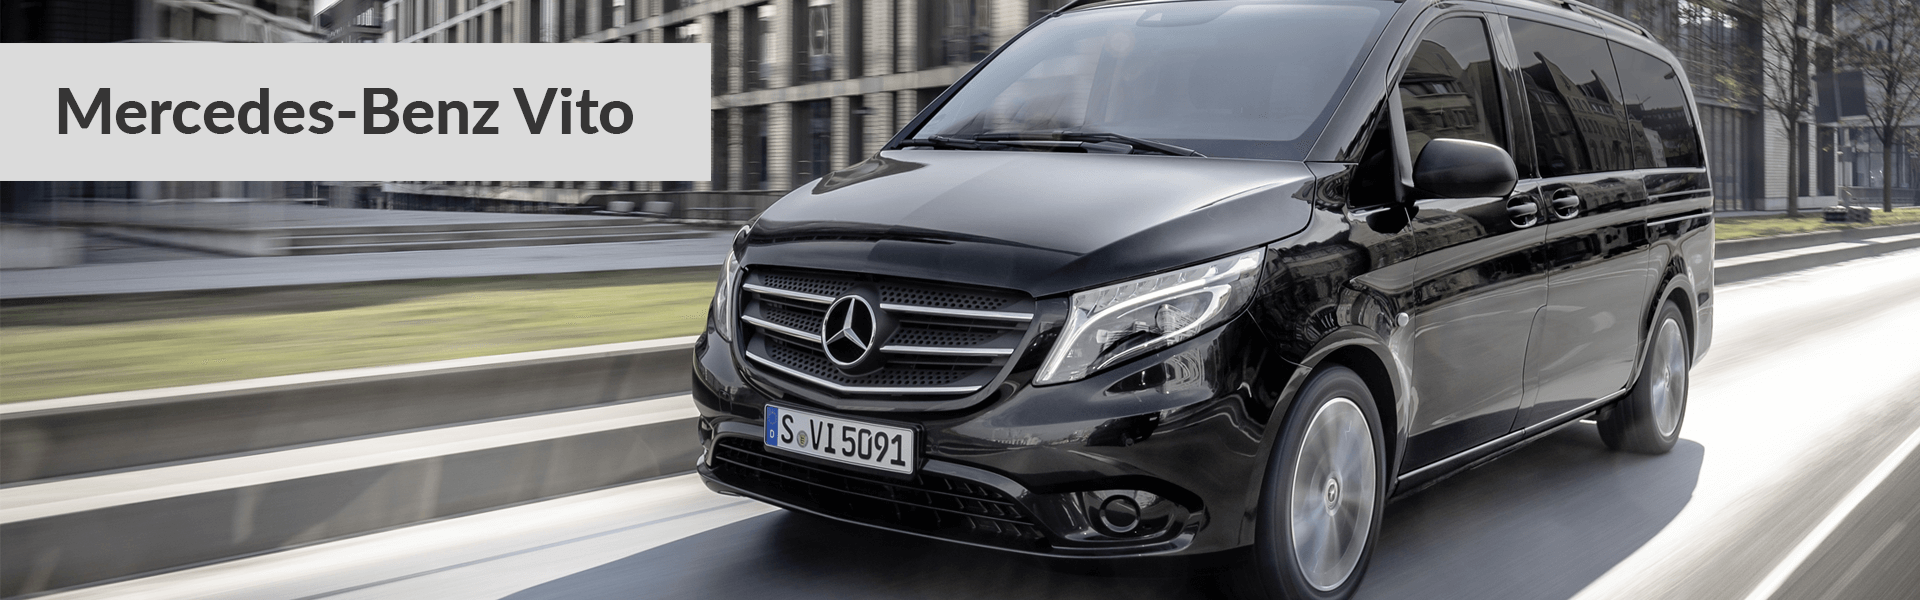 Mercedes Benz Vito Desktop